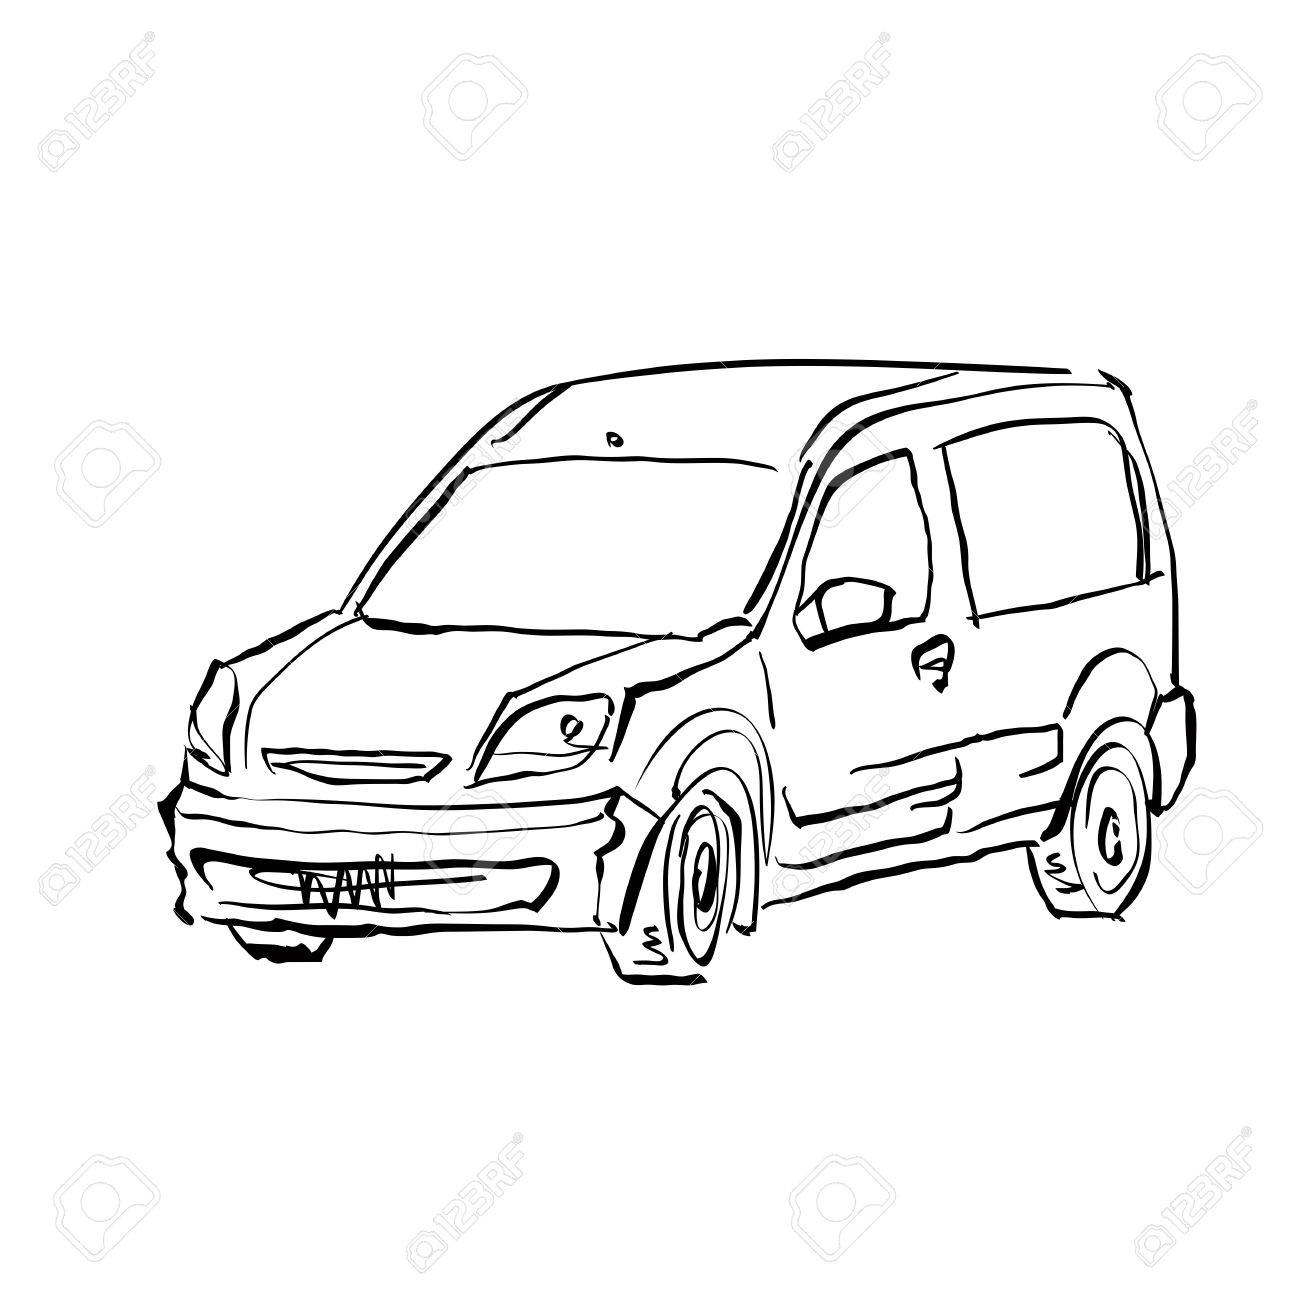 1300x1300 Black And White Hand Drawn Car On White Background, Illustration